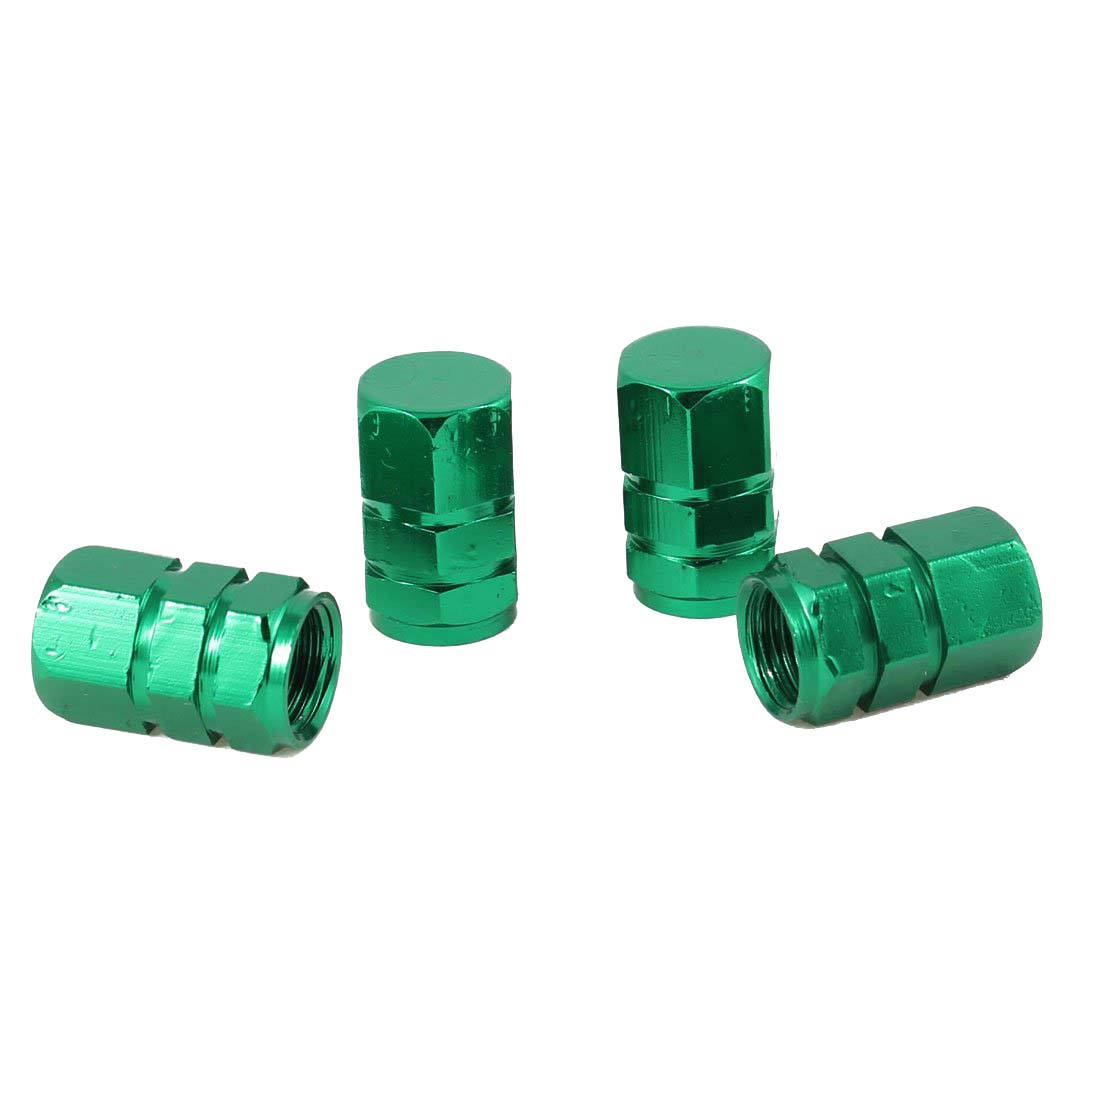 4 Pcs Car Green Alloy Hex Type Tire Wheel Stem Valve Cap 17mmx10mm